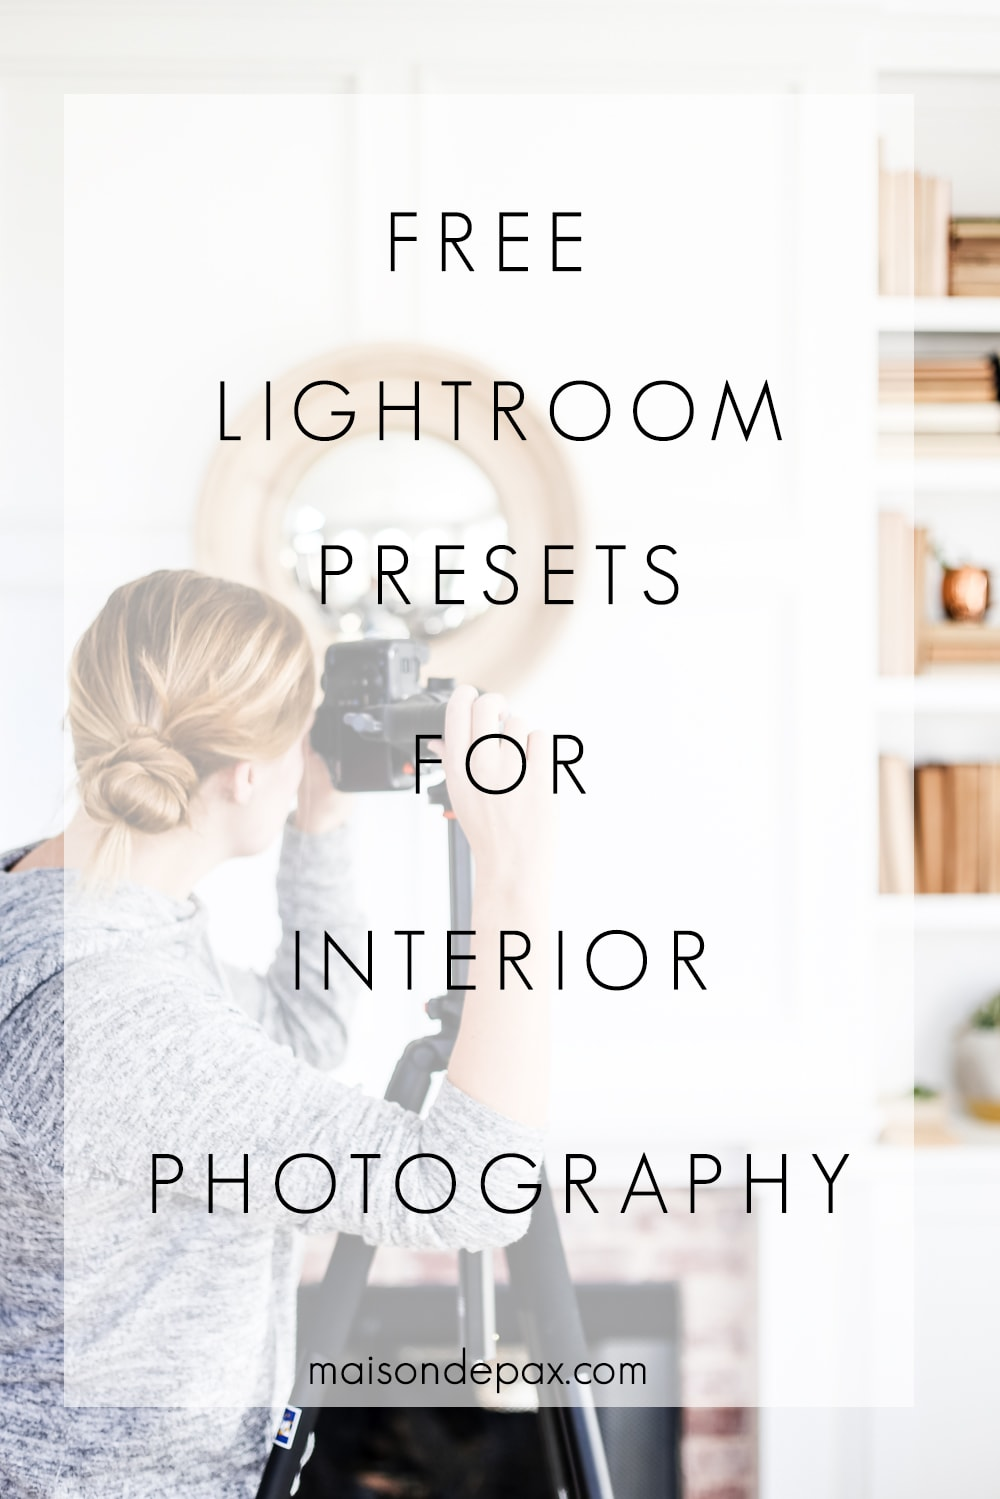 Get two FREE lightroom presets perfect for interior photography!! #lightroompresets #lightroom #lightroompreset #interiorphotography #interiorphotos #photoediting #adobelightroom #photosoftware #freepresets